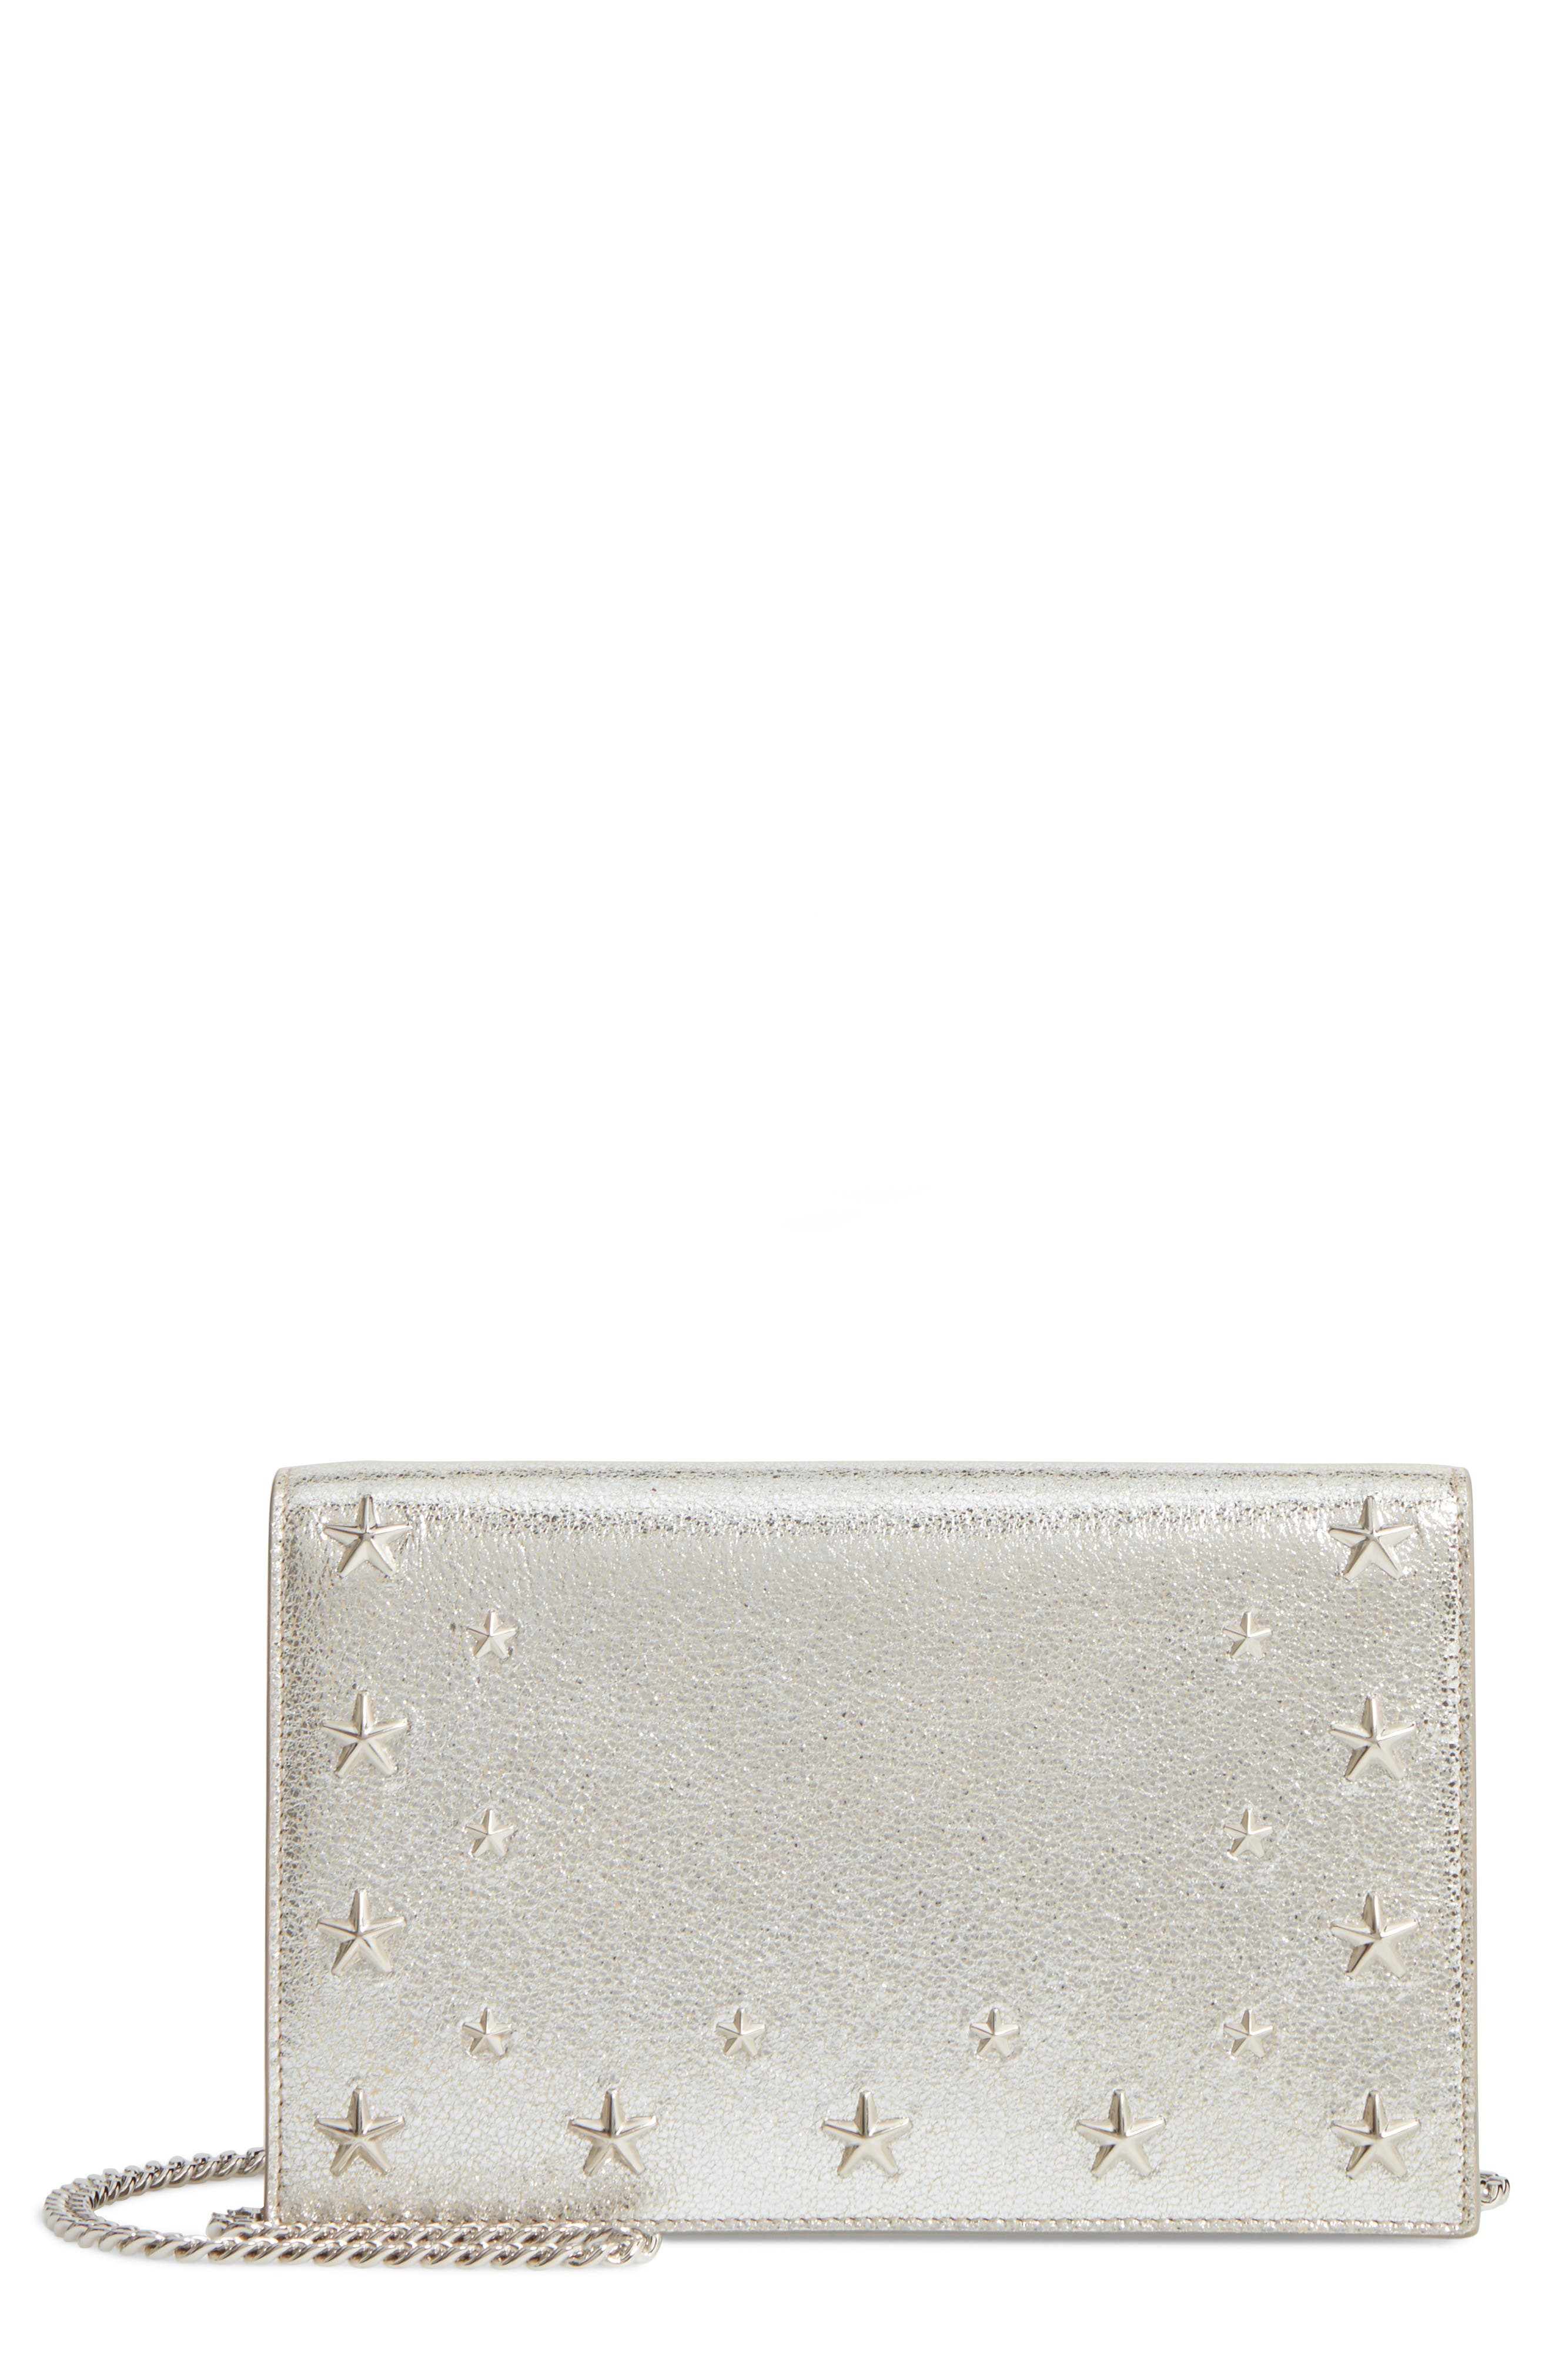 Alternate Image 1 Selected - Jimmy Choo Sky Leather Crossbody Bag